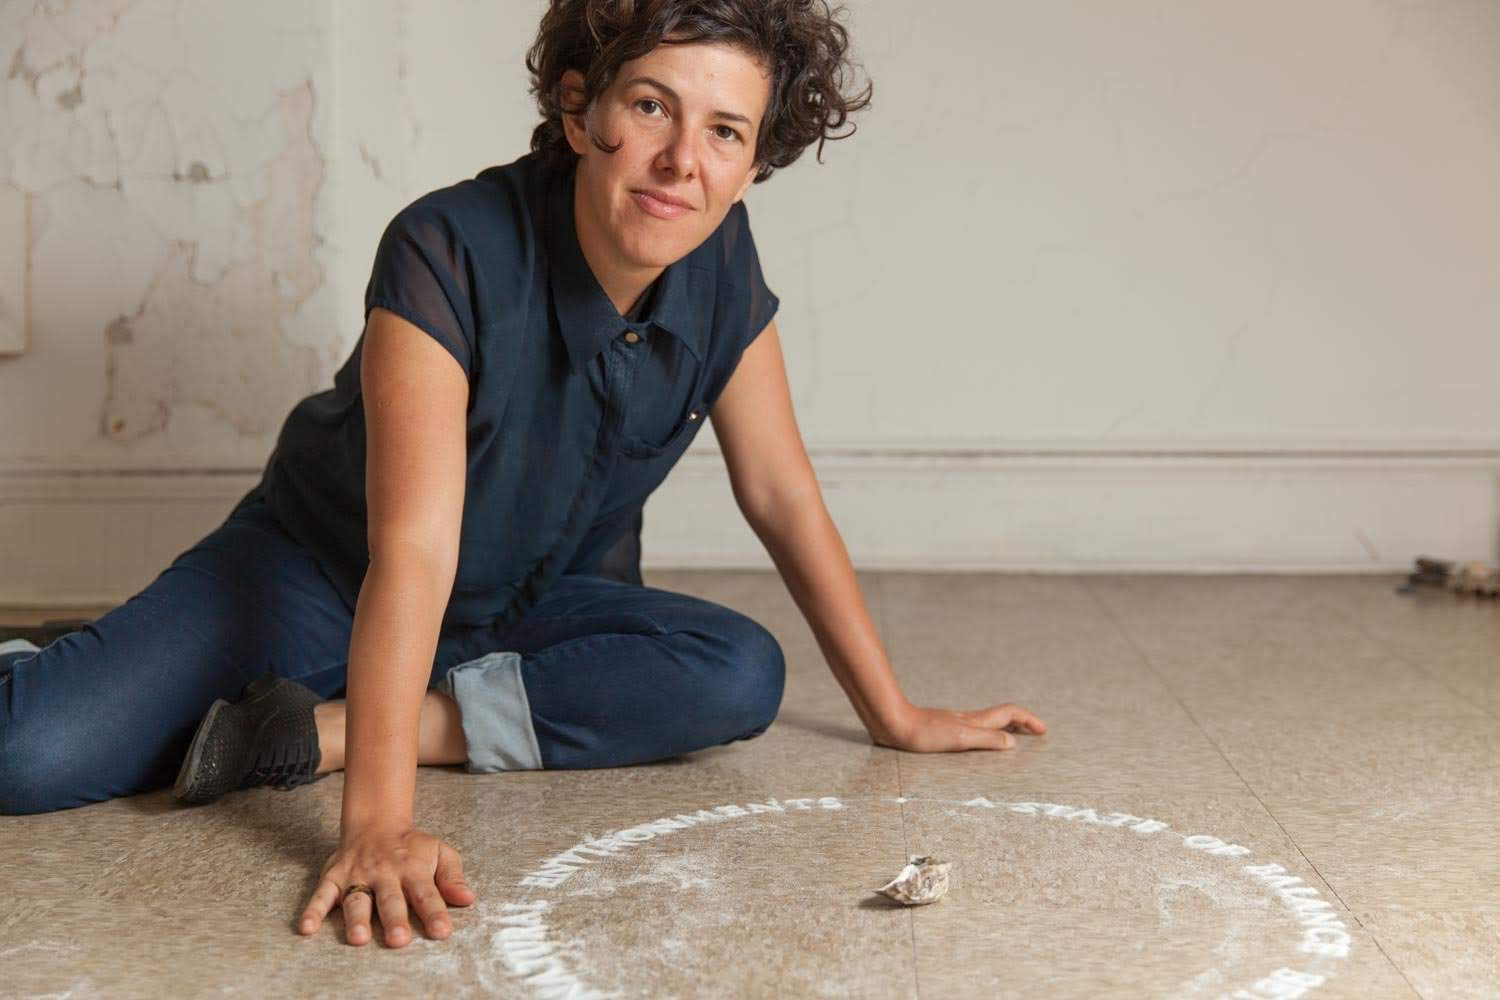 A photo of a person with short tousled brown hair wearing jeans and a dark blue shirt. they are crouched on the floor in front of a circle made with a white powder.